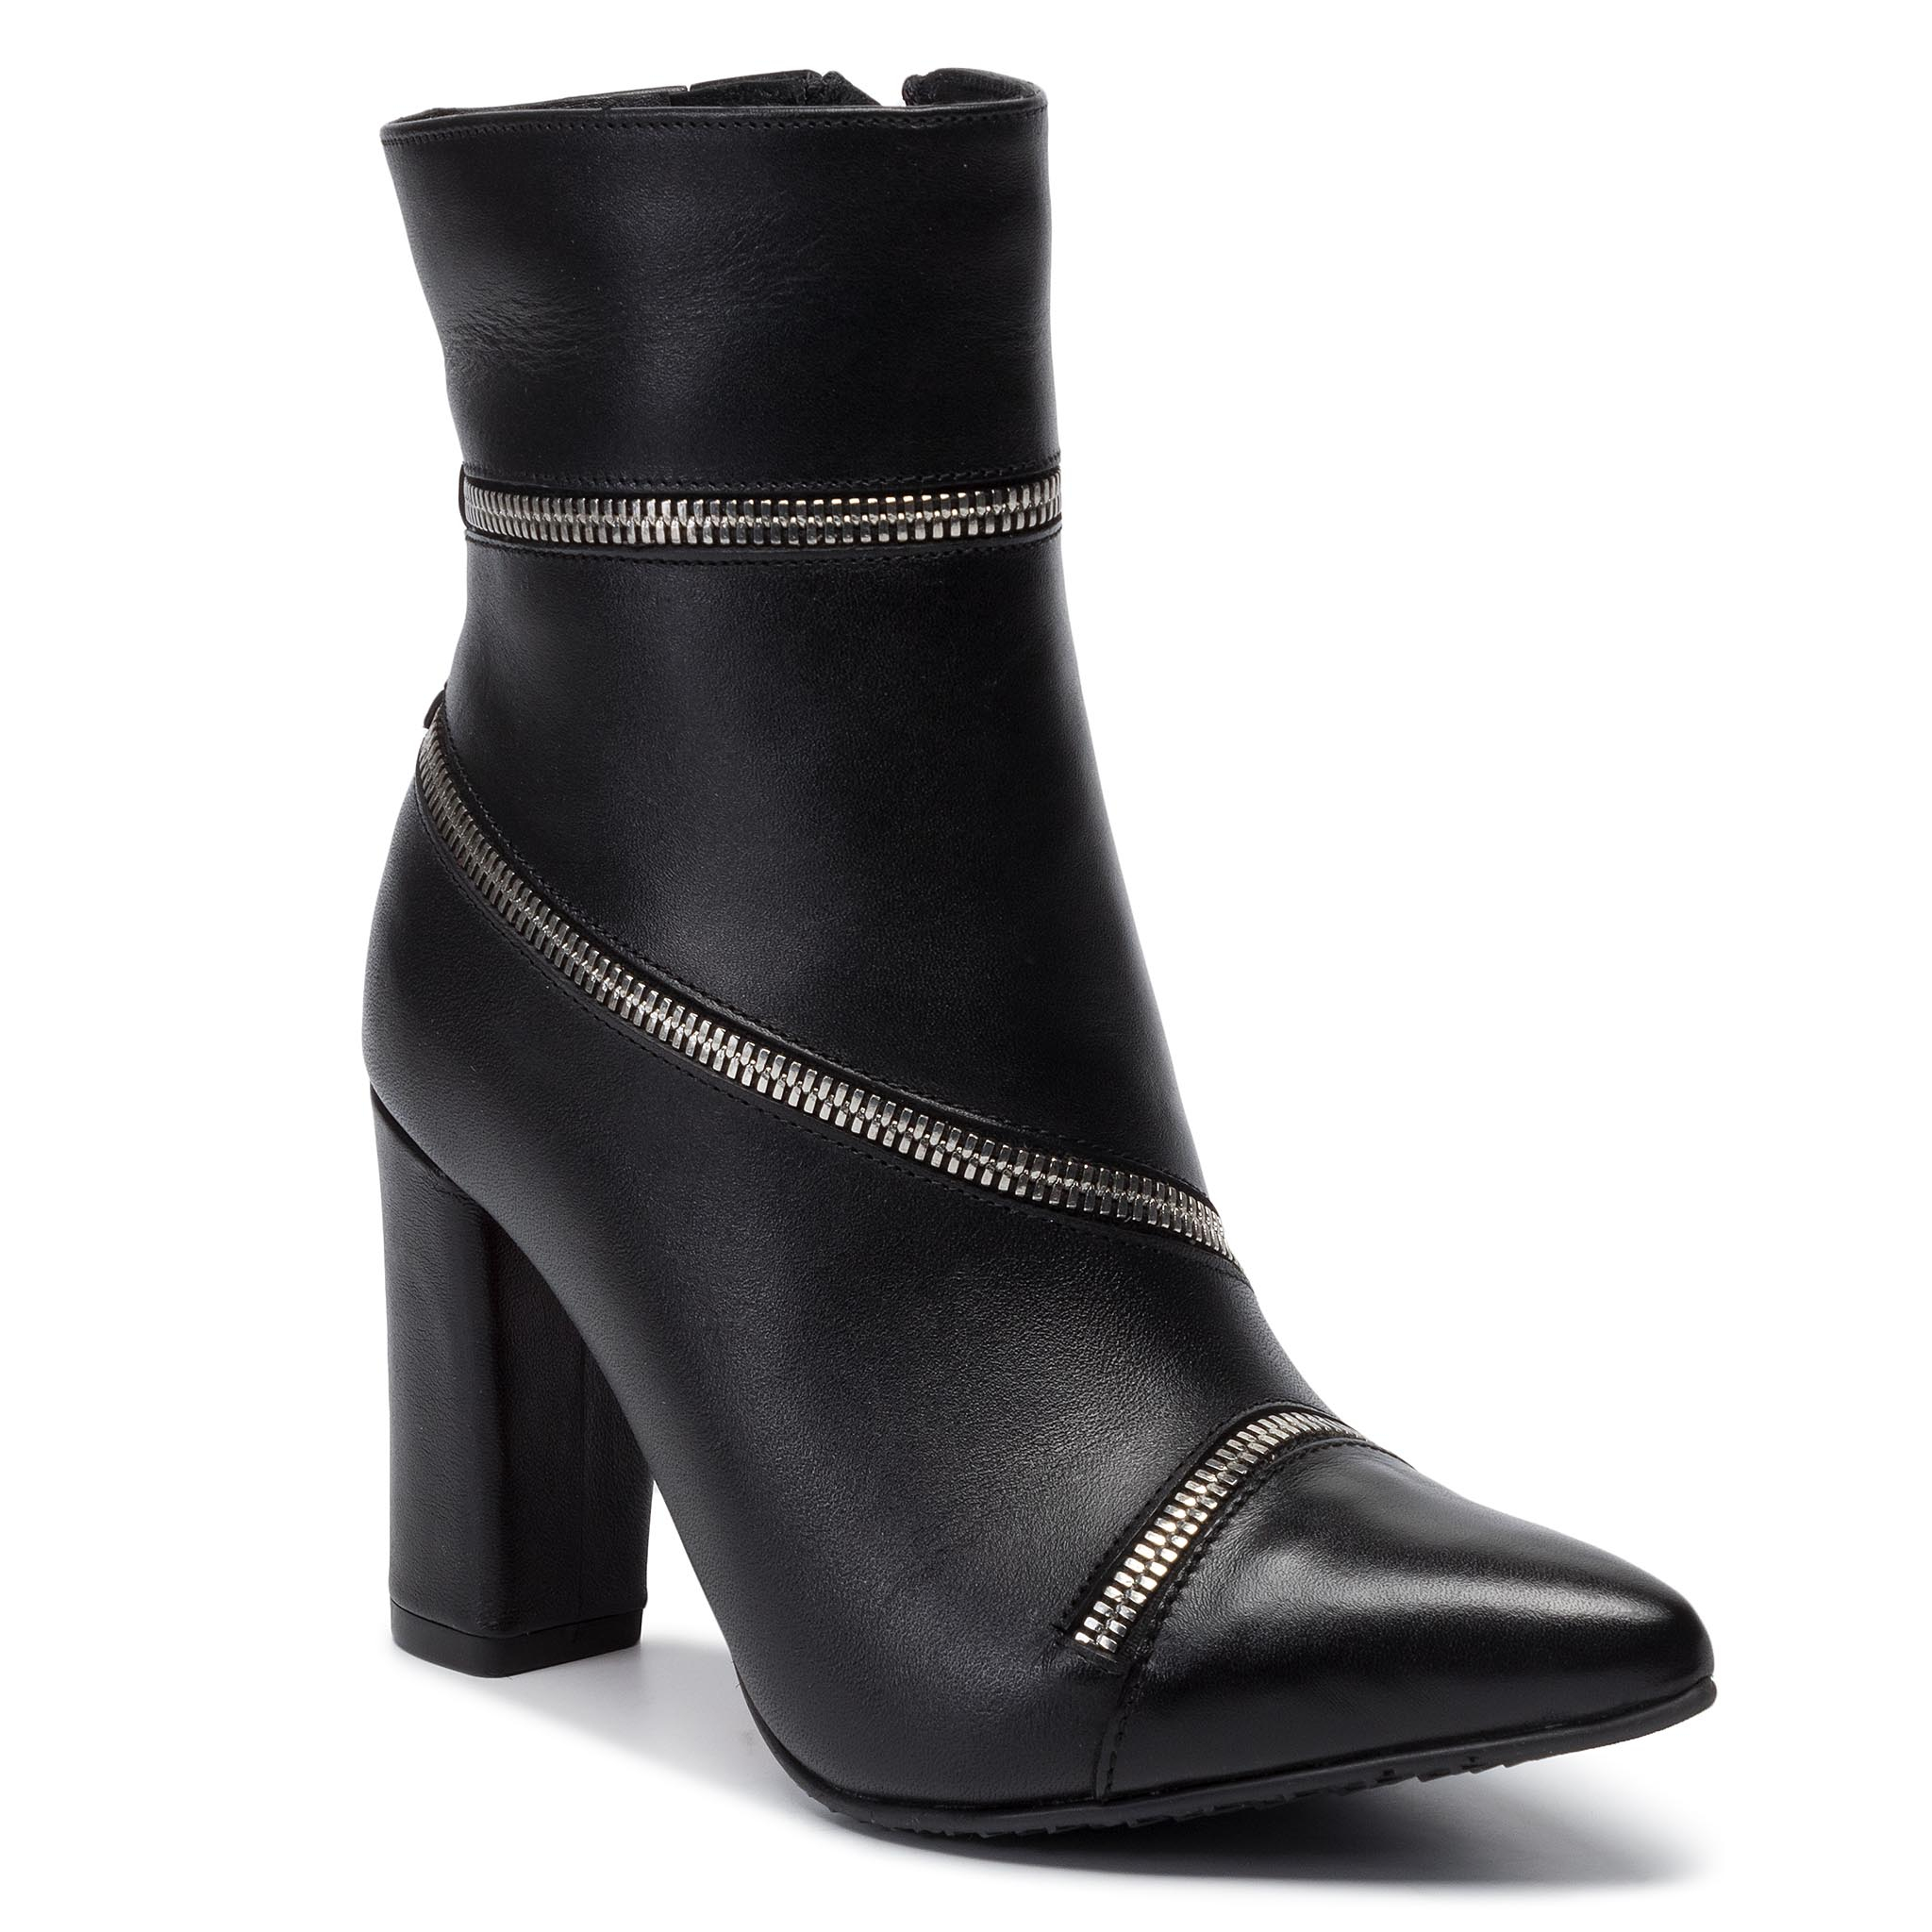 Bottines OLEKSY - 2908/A89/000/000/000 Noir